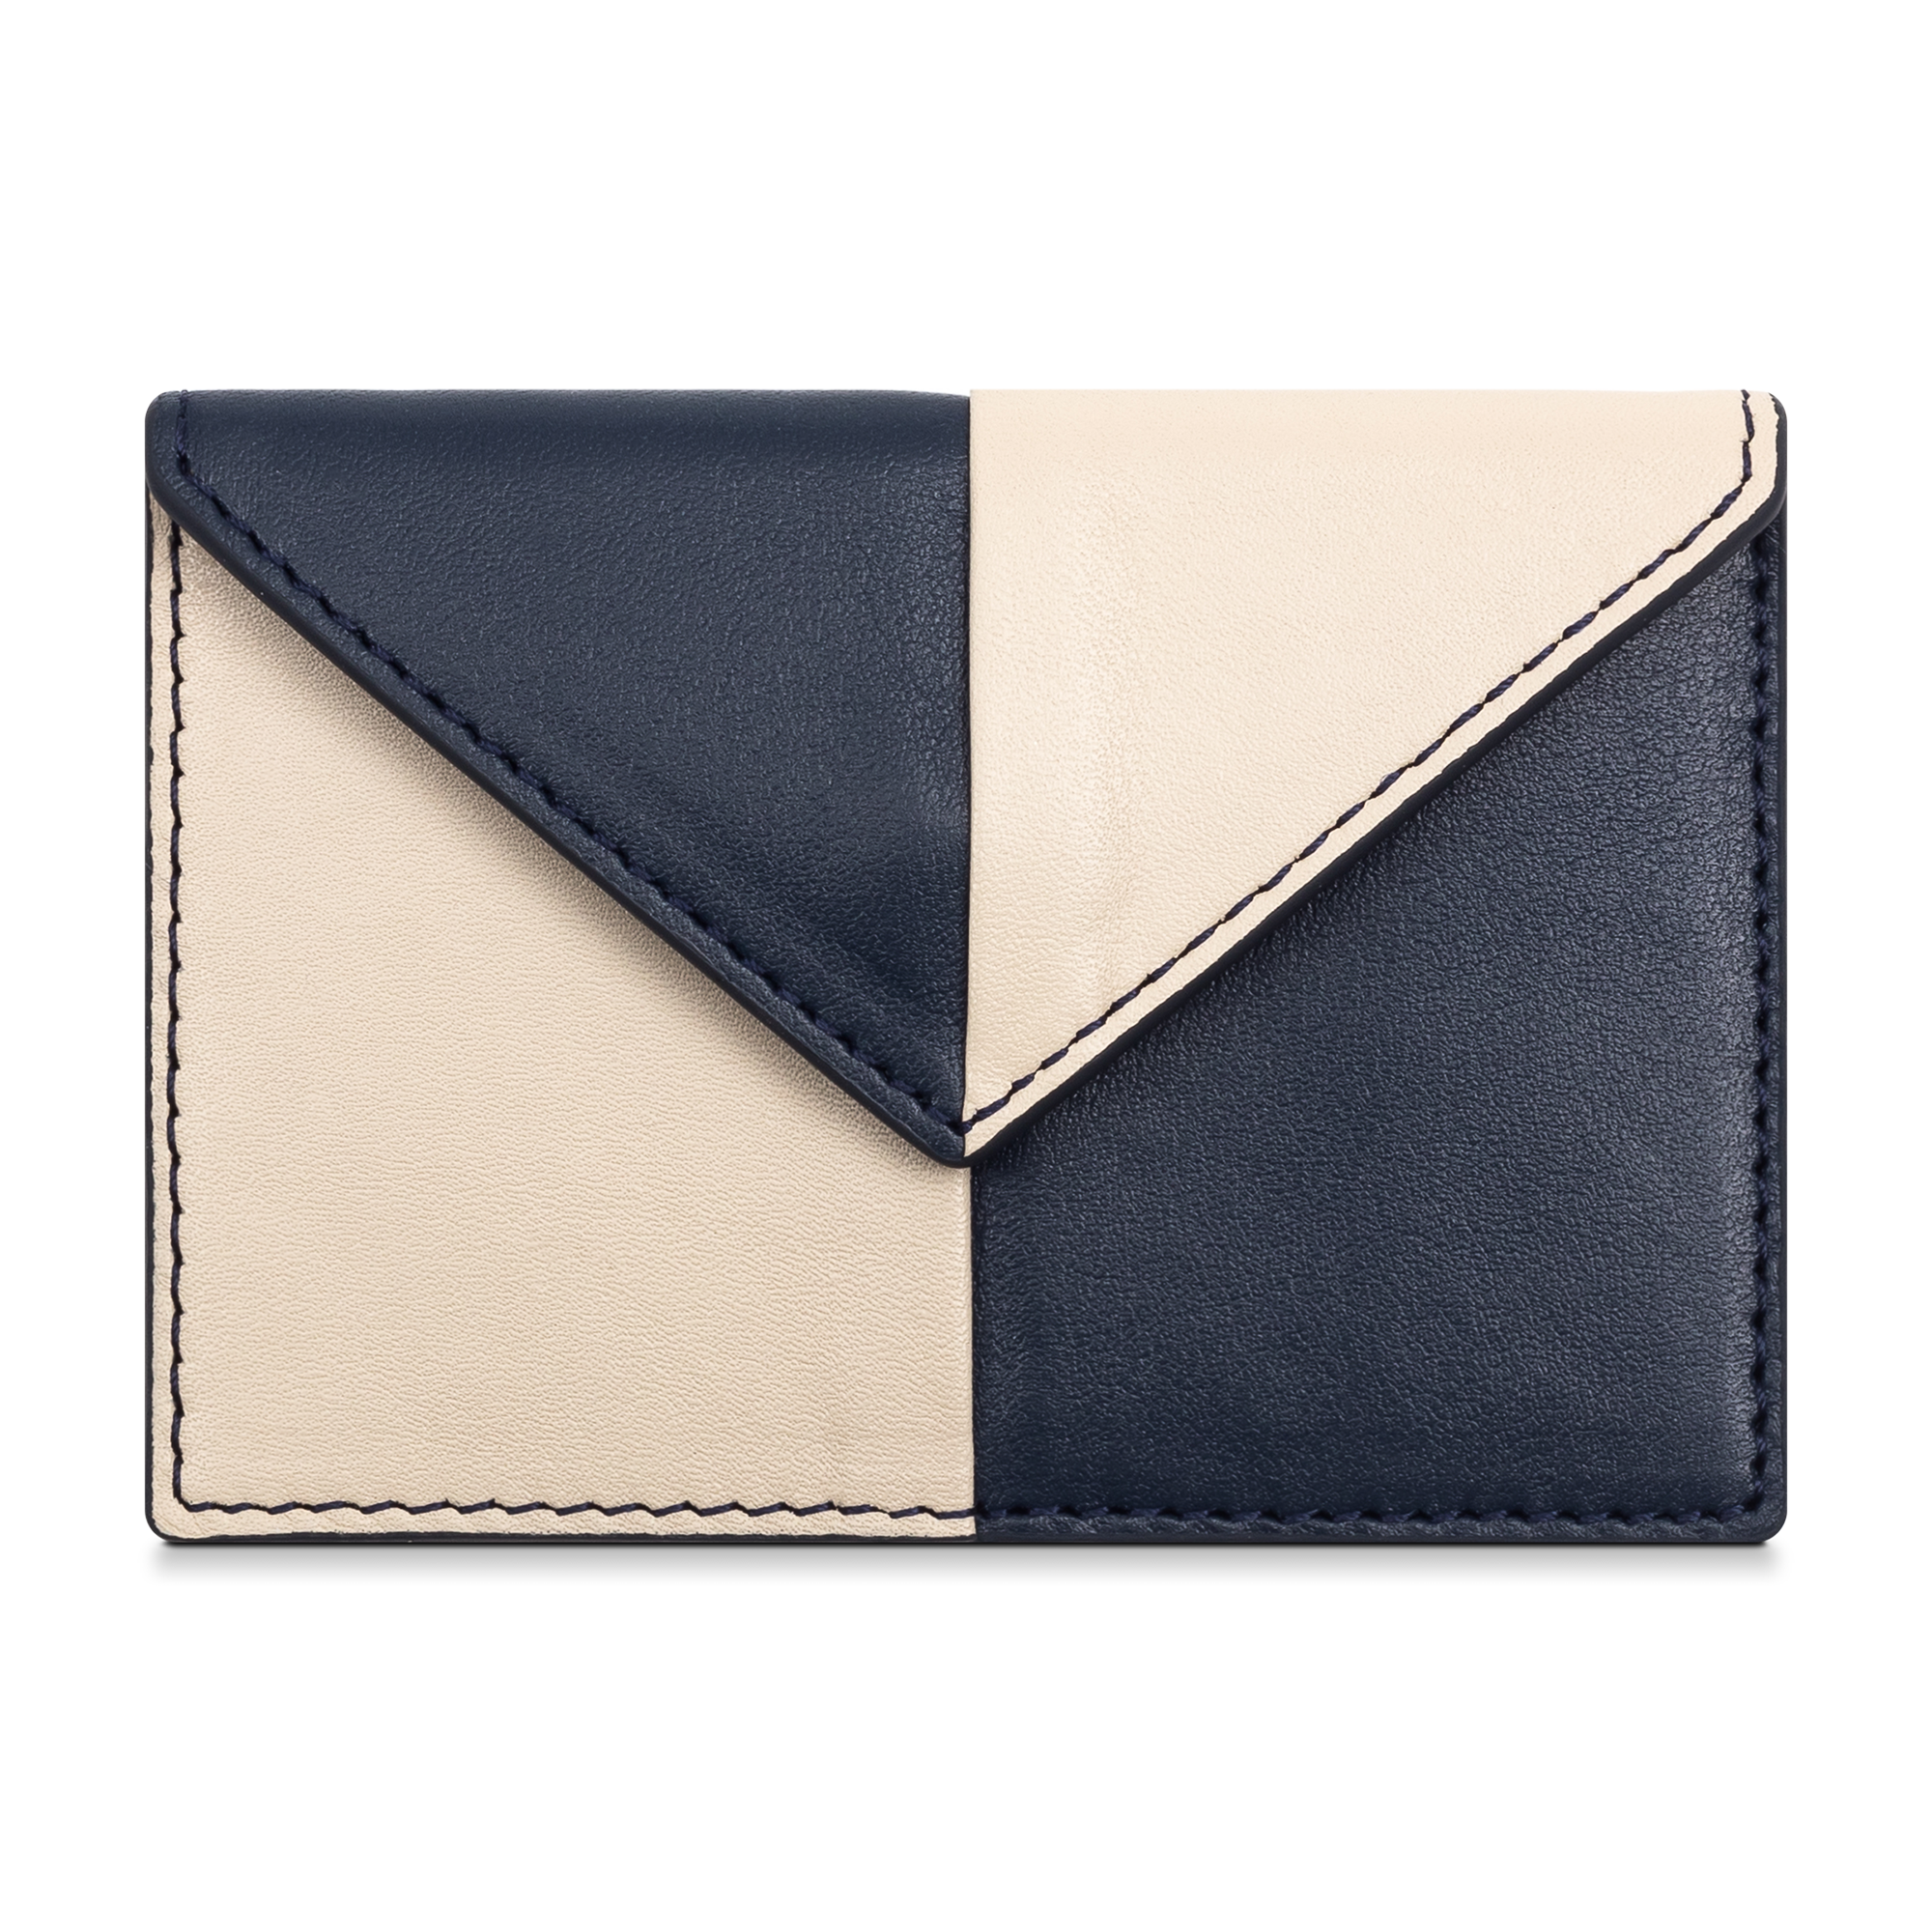 Wallet product photo